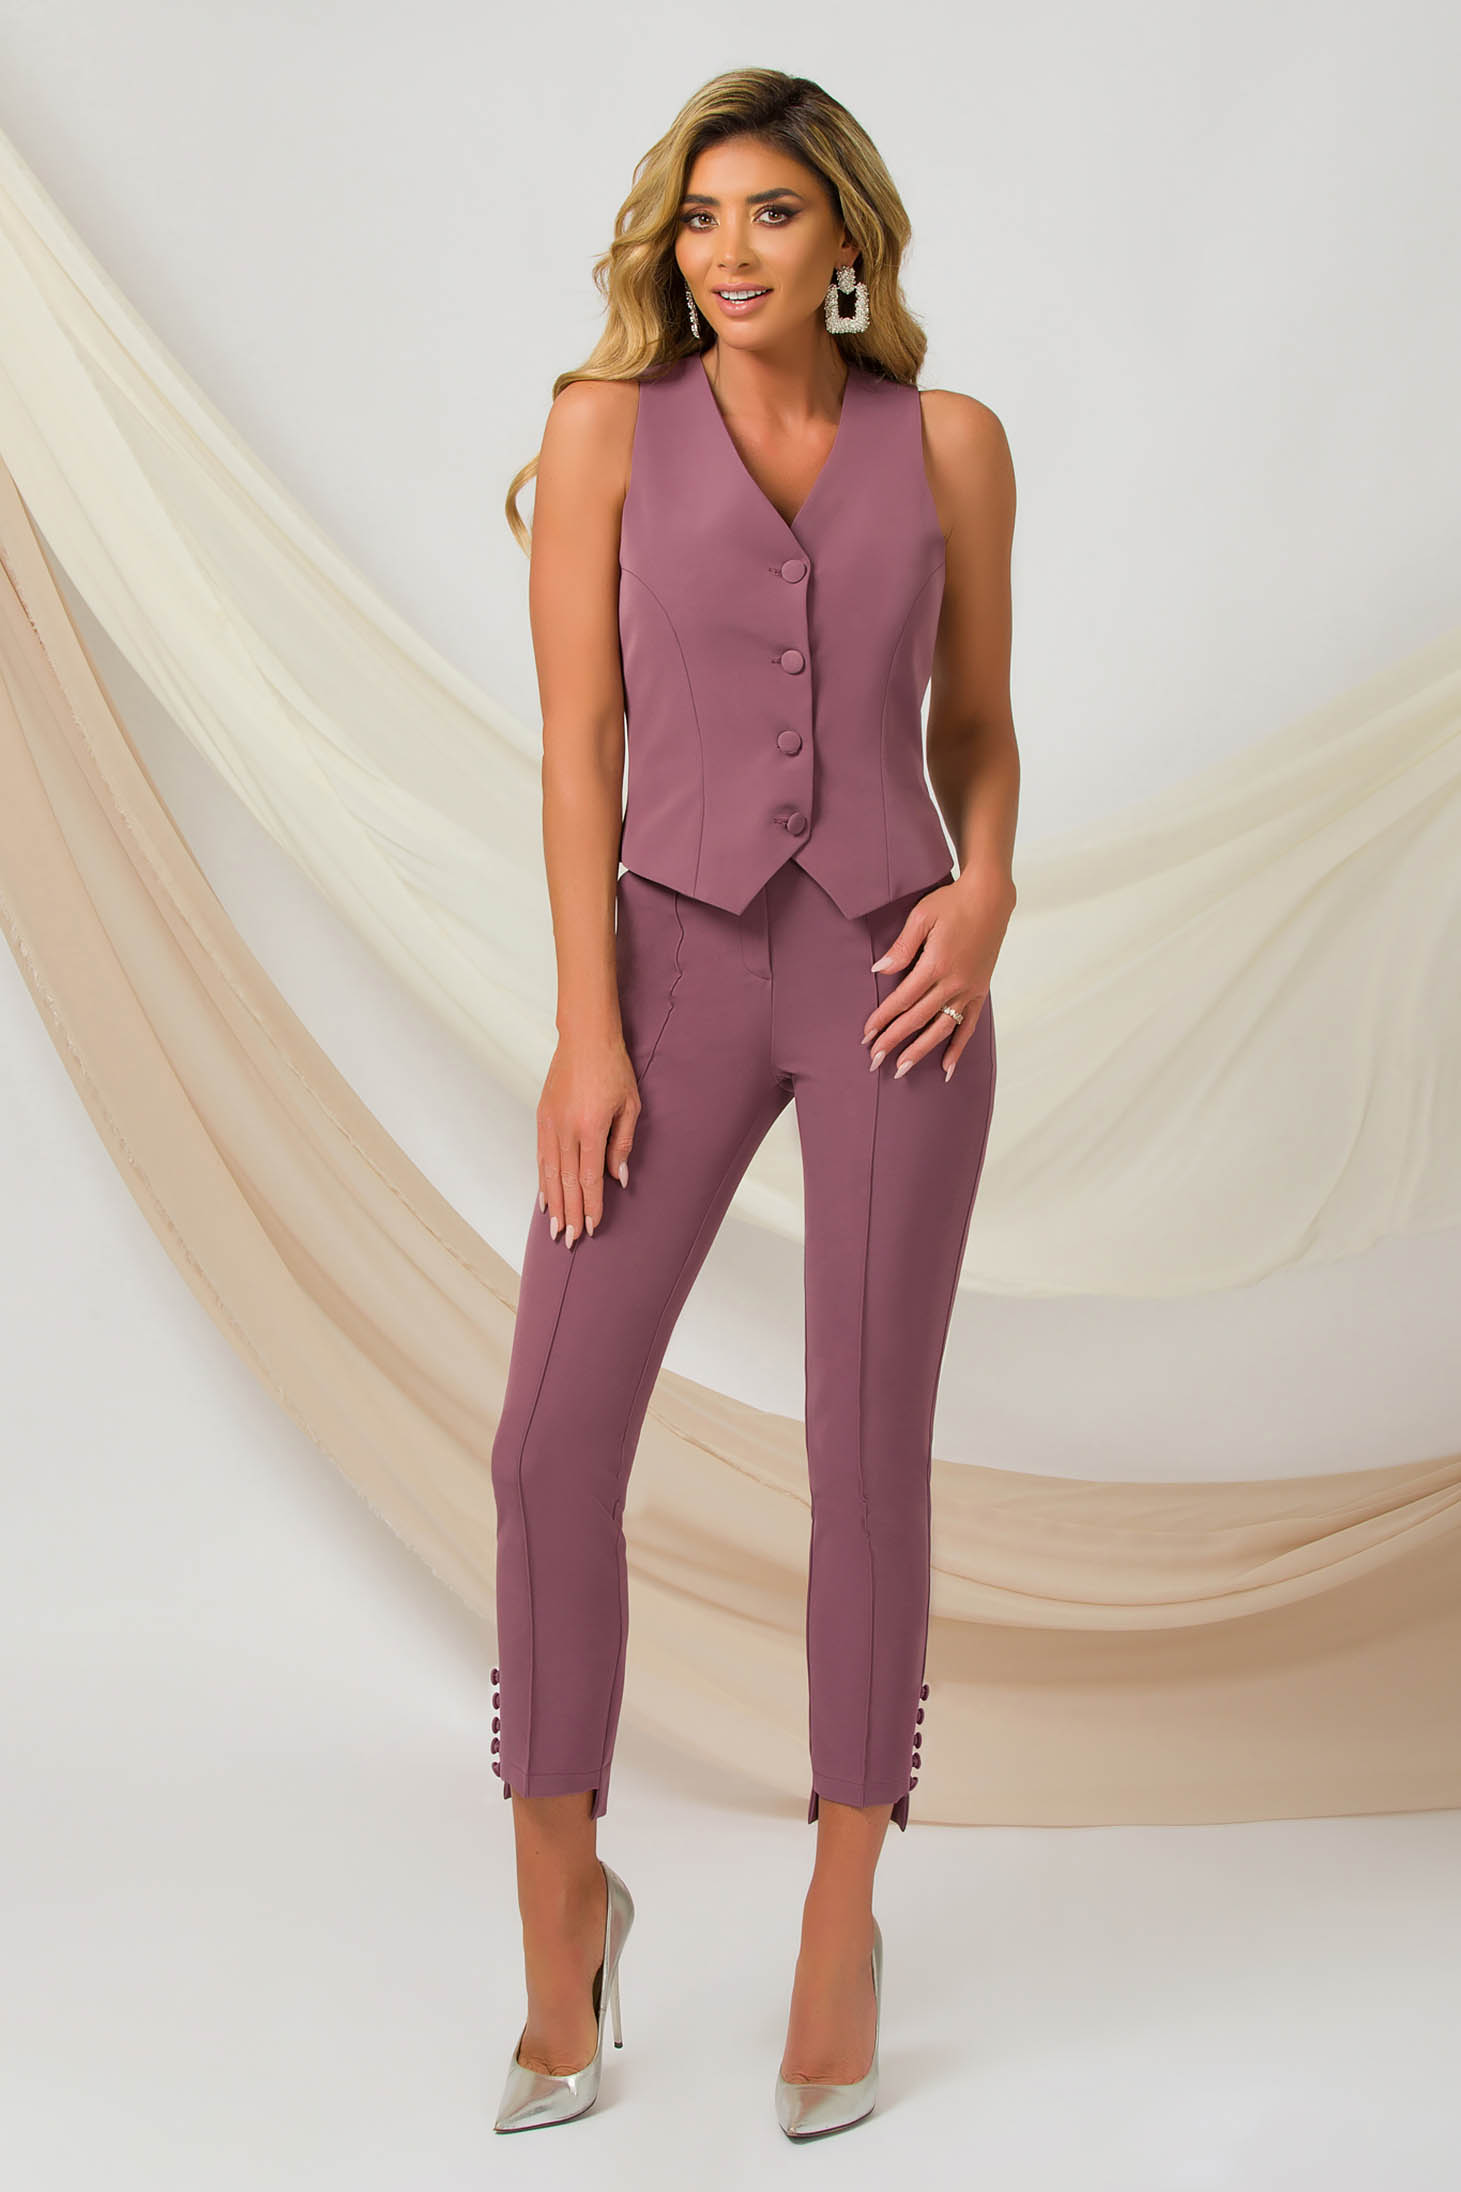 Pink trousers office conical slightly elastic fabric with button accessories